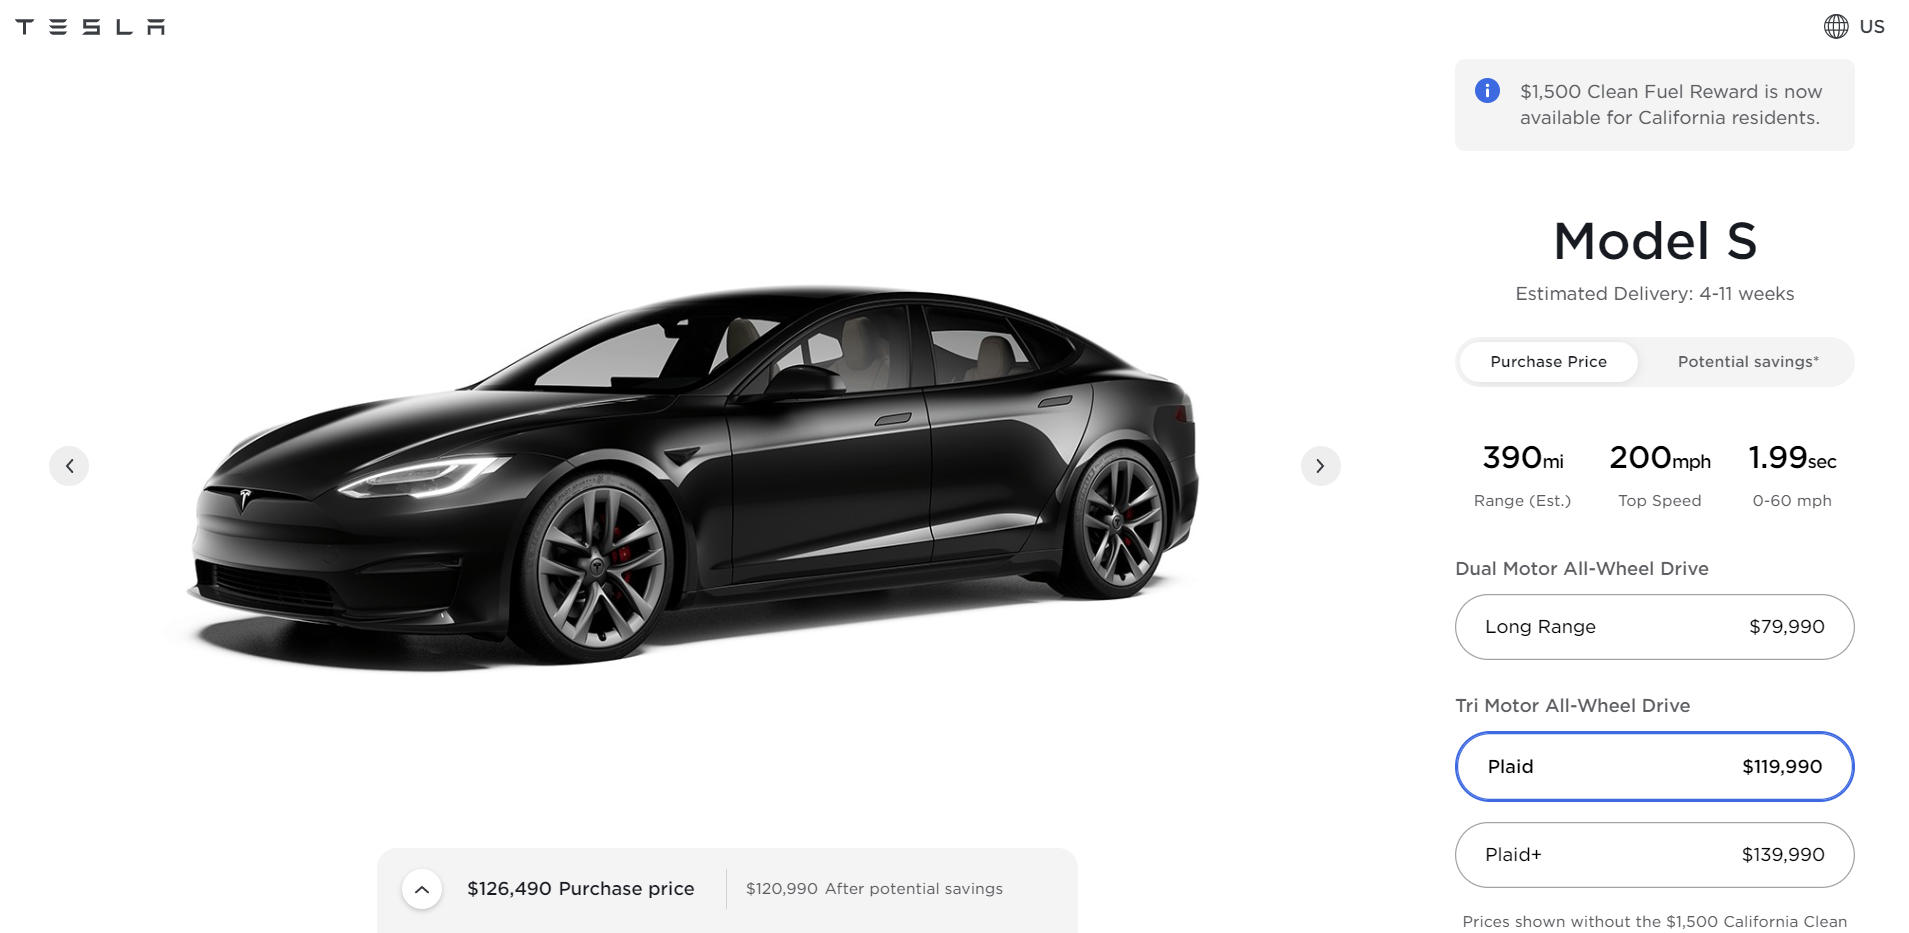 Tesla as an example of successful product configurator